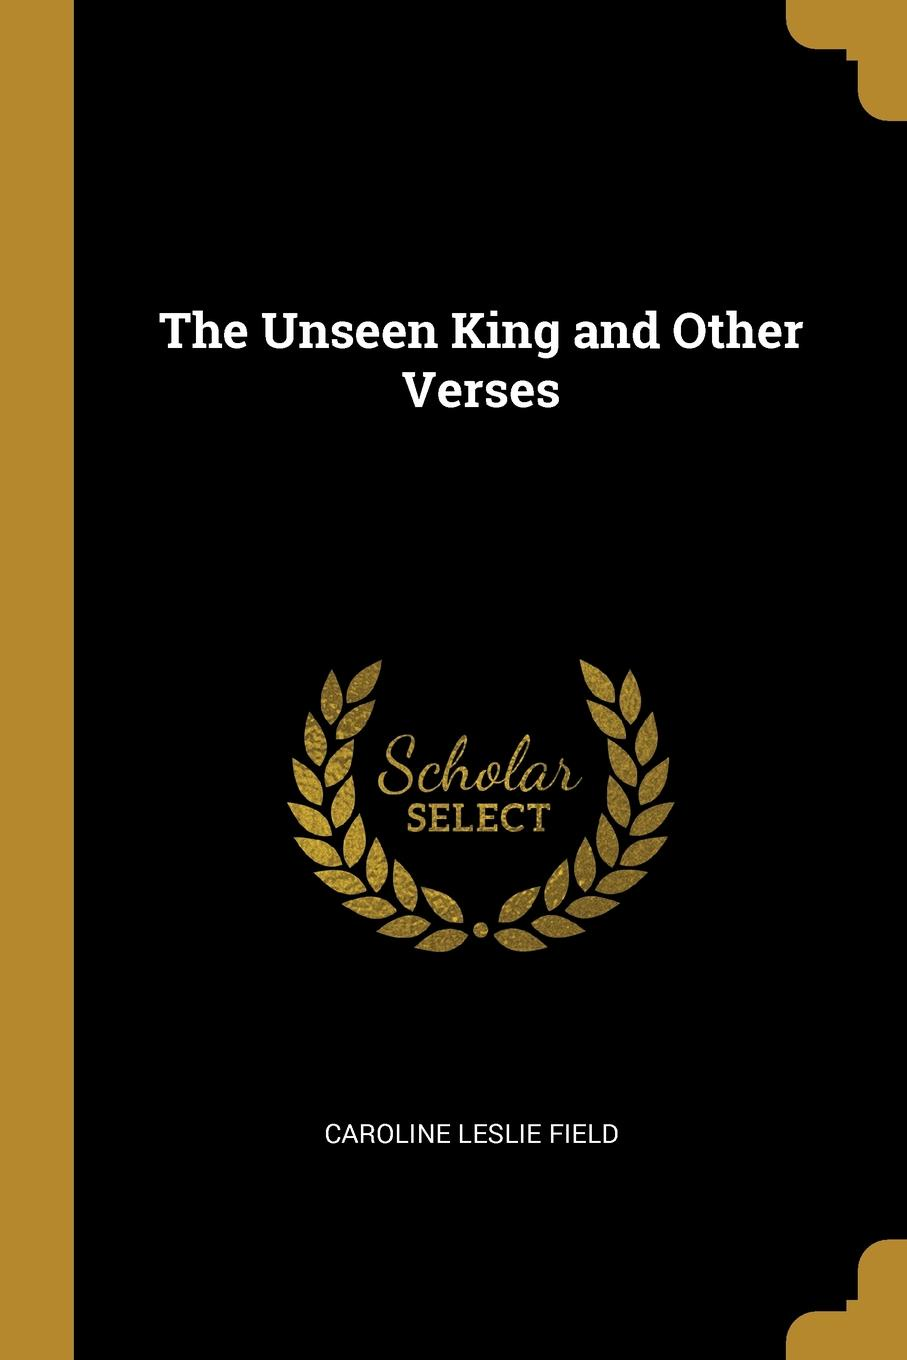 Caroline Leslie Field. The Unseen King and Other Verses